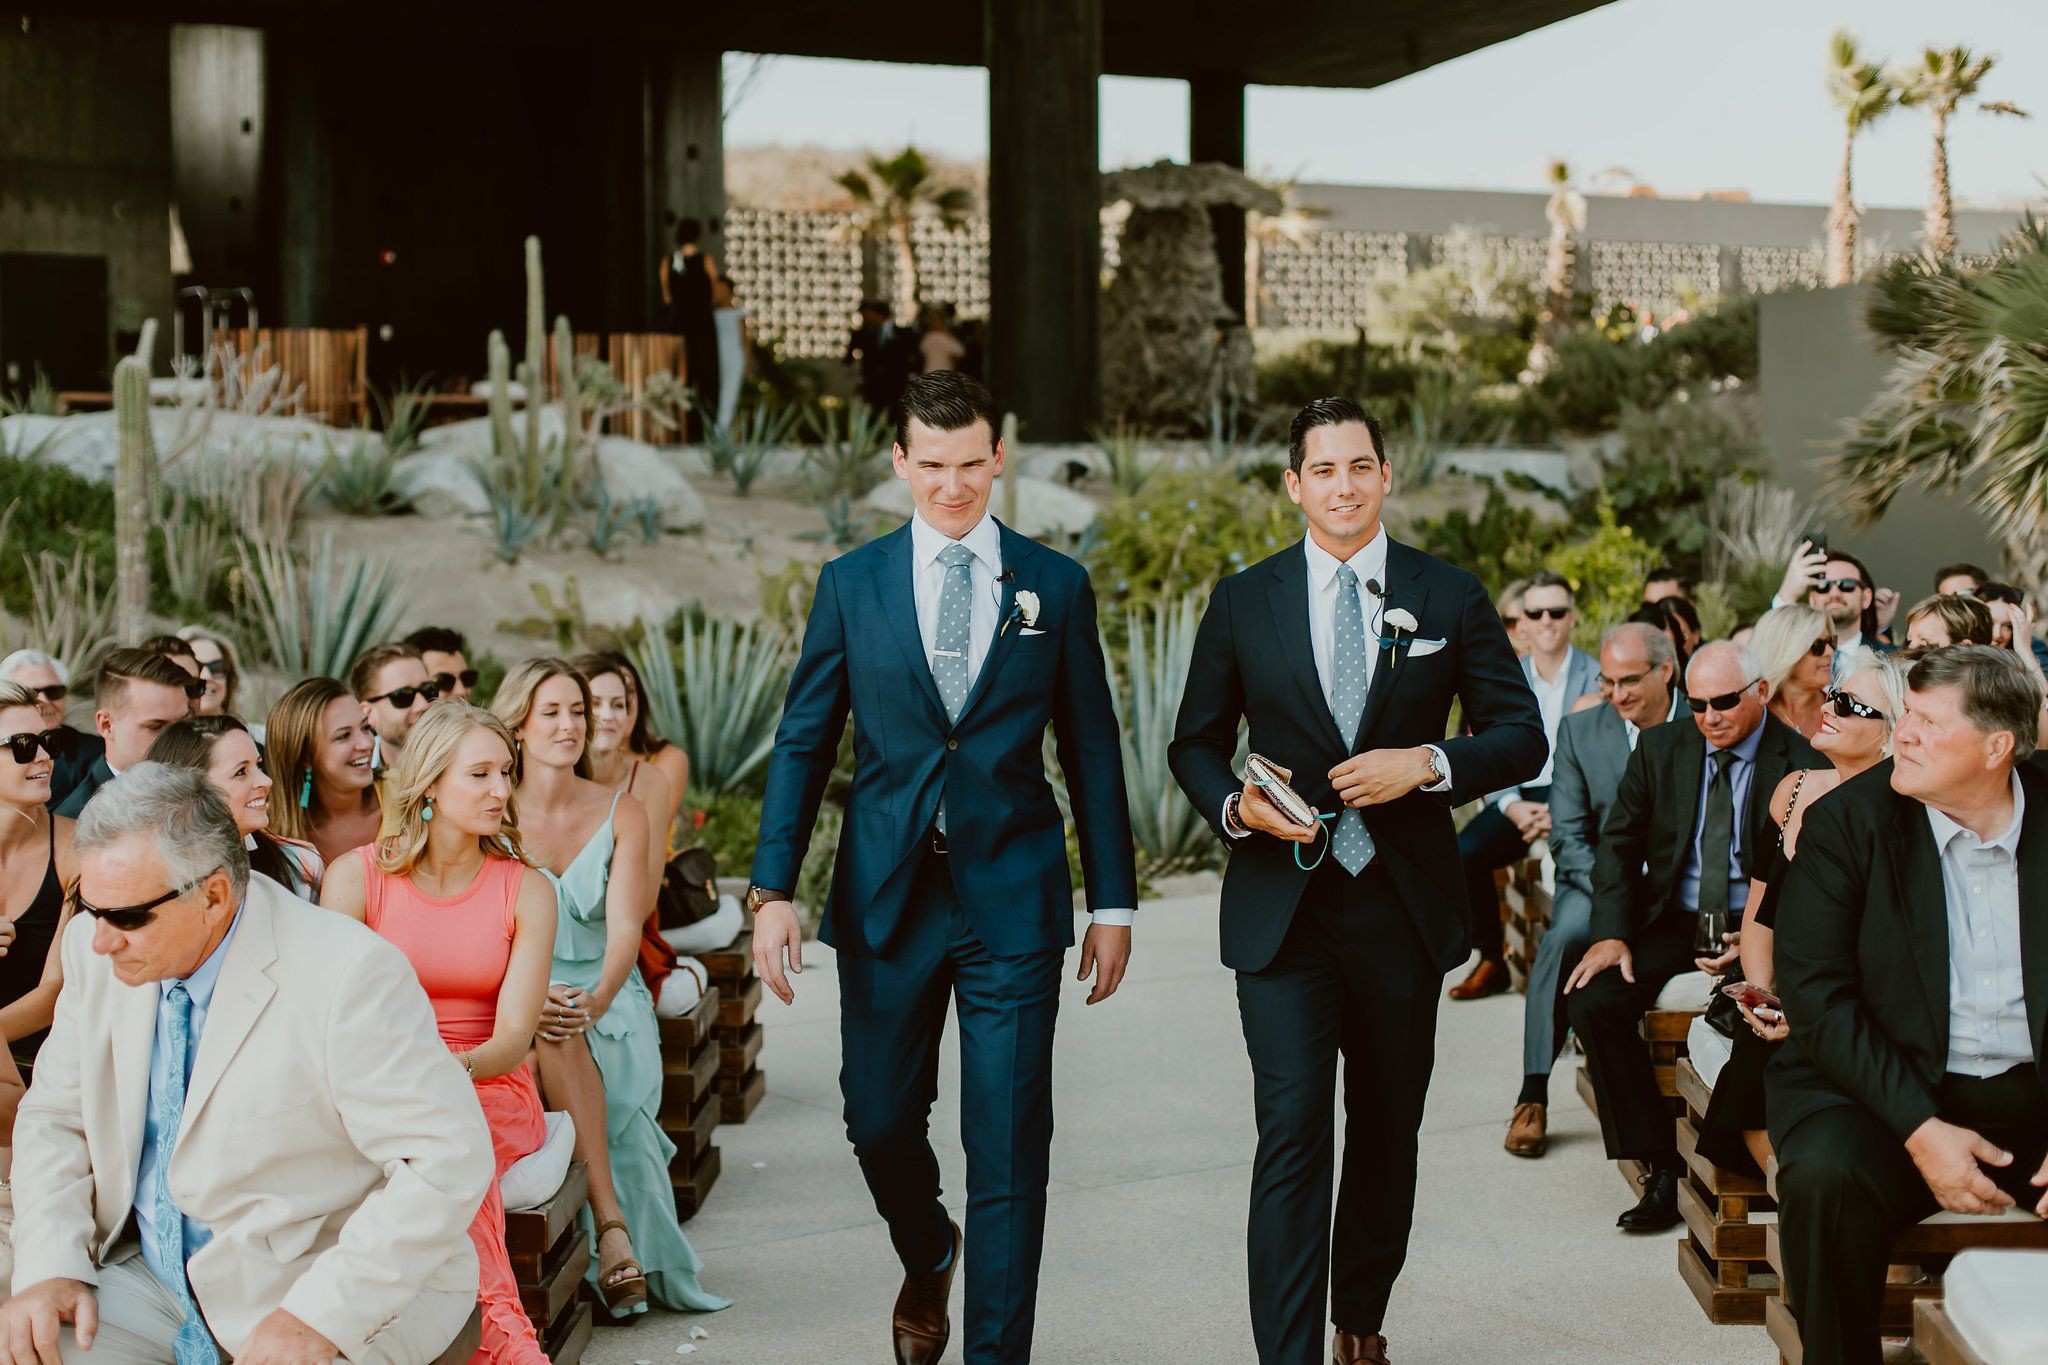 Groom walking down with the officiant during the Ceremony Processional. This photo was taken by Ana and Jerome at The Cape by Thompson Hotels in Los Cabos, Mexico. Wedding Planning by Cabo Wedding Services